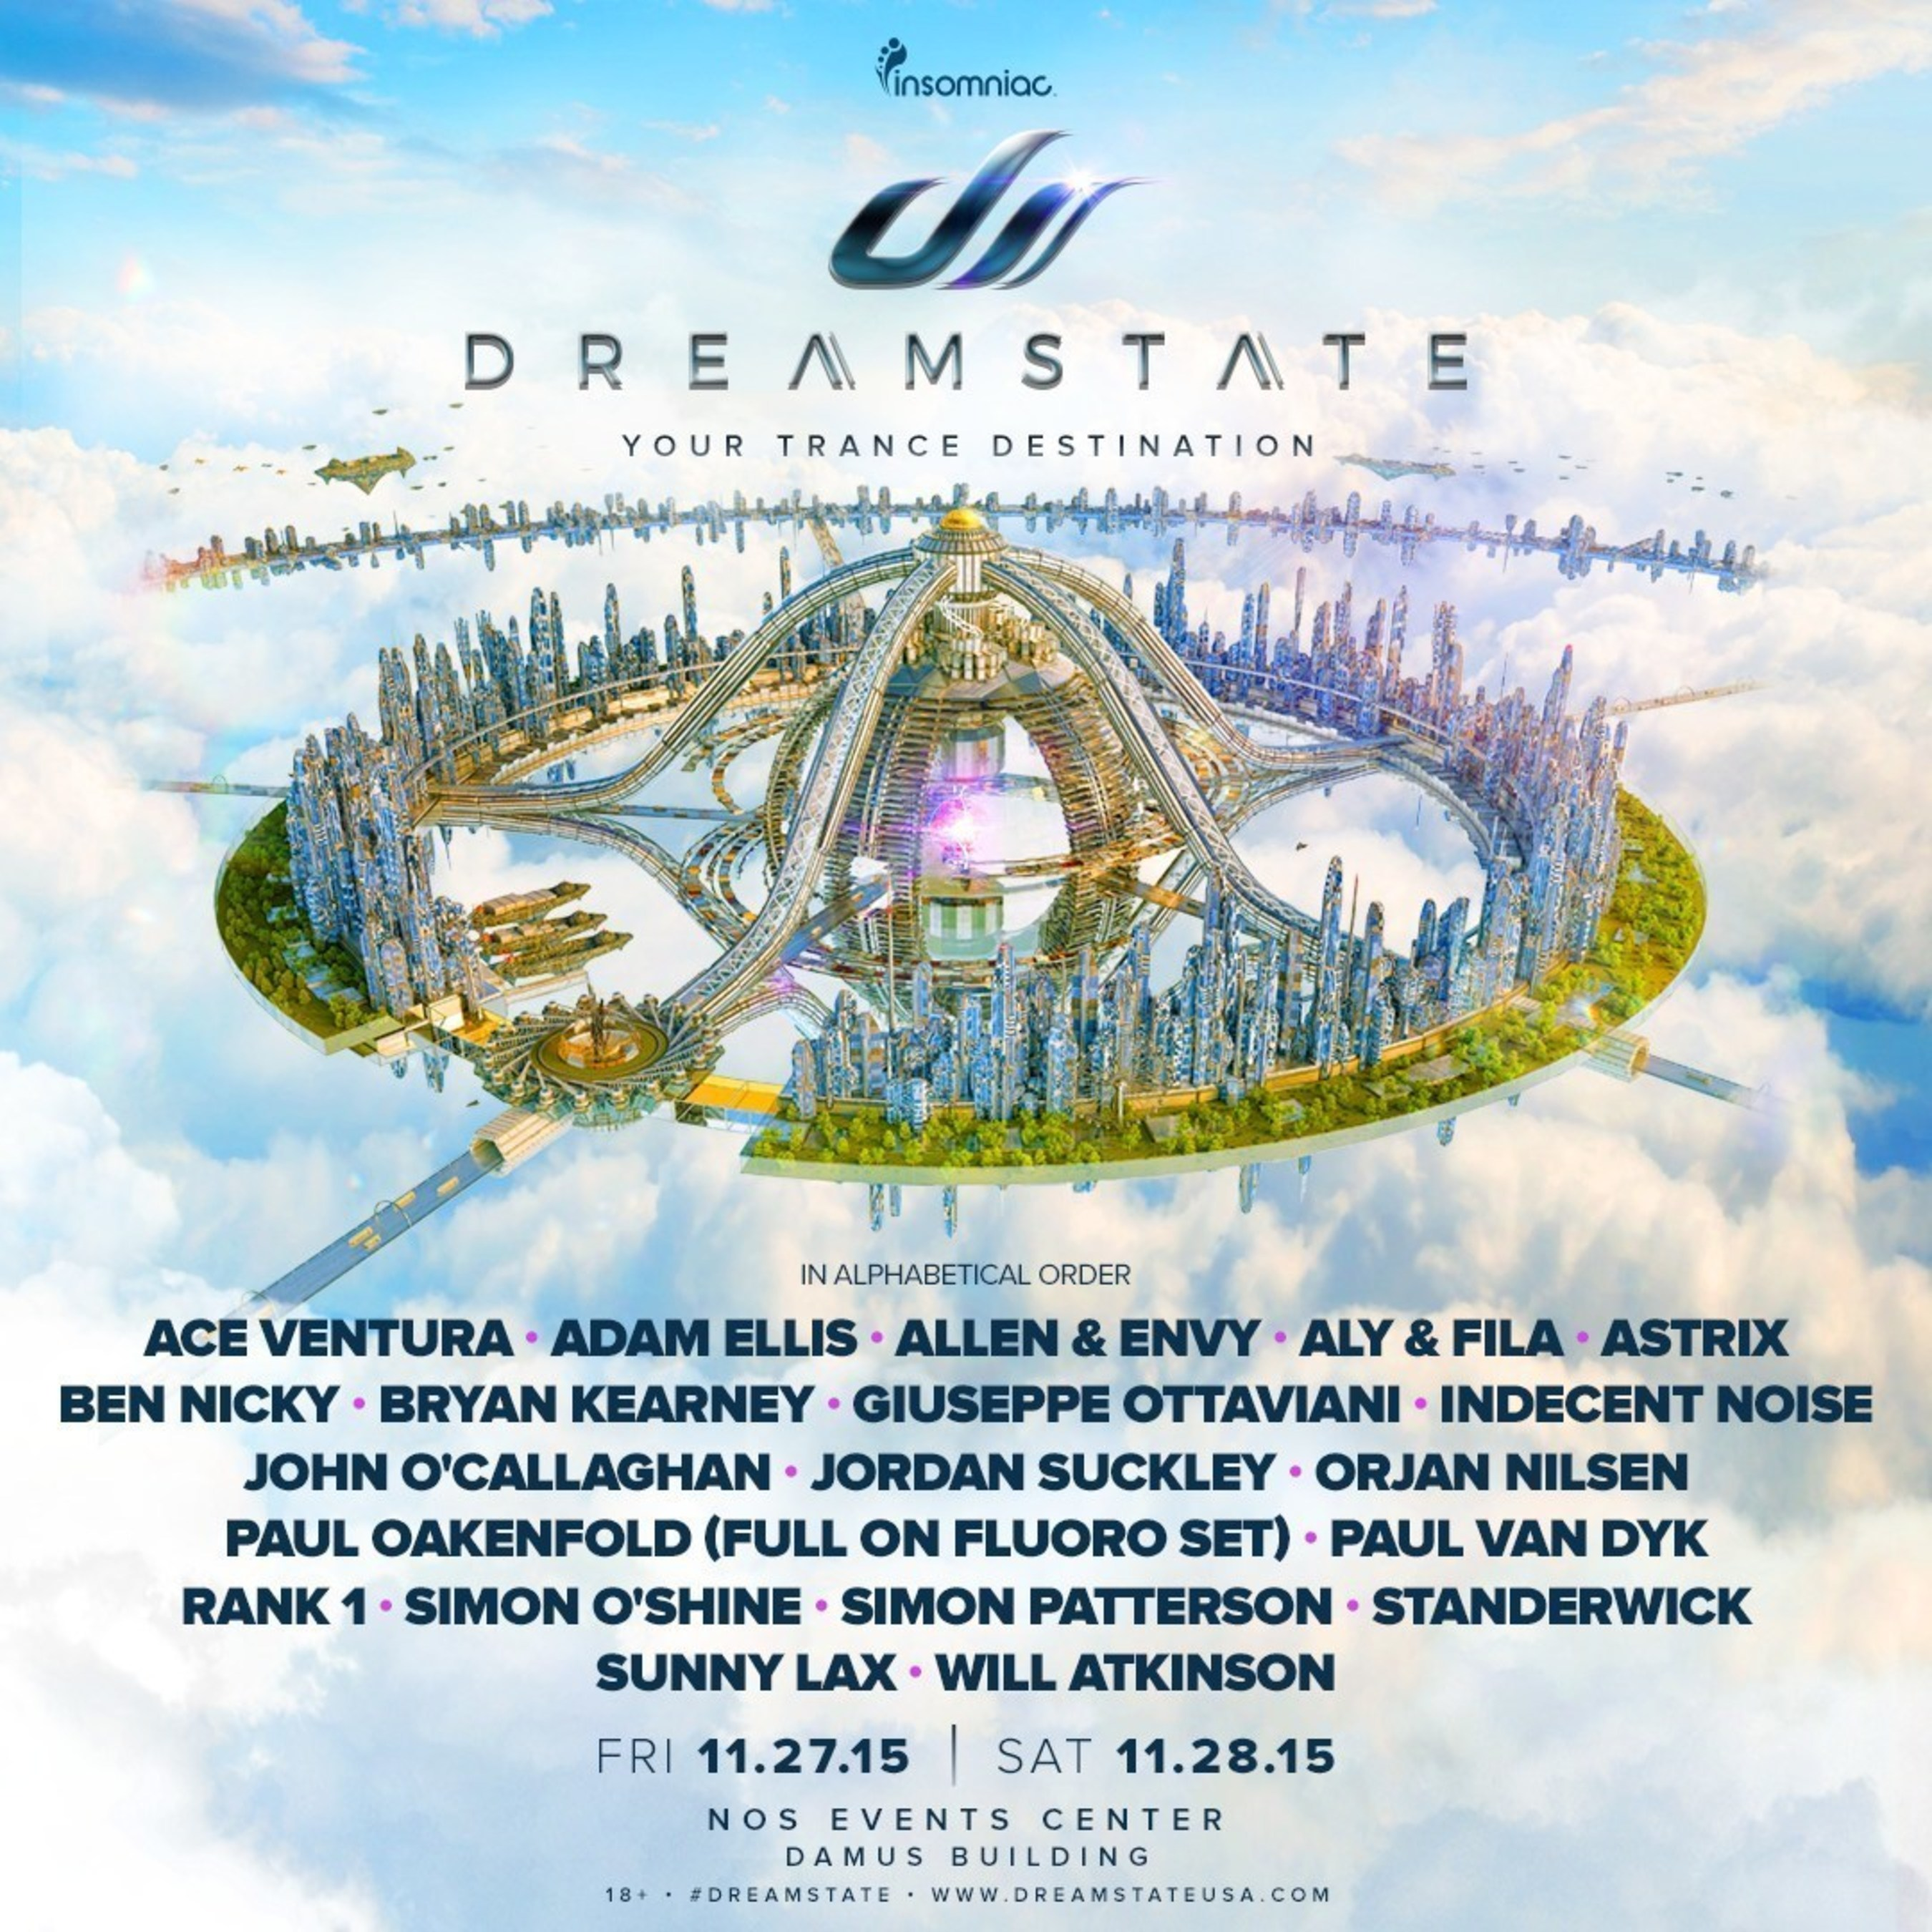 DREAMSTATE IS HERE: INSOMNIAC UNLEASHES THE DEFINITIVE DESTINATION FOR TRANCE MUSIC FANS